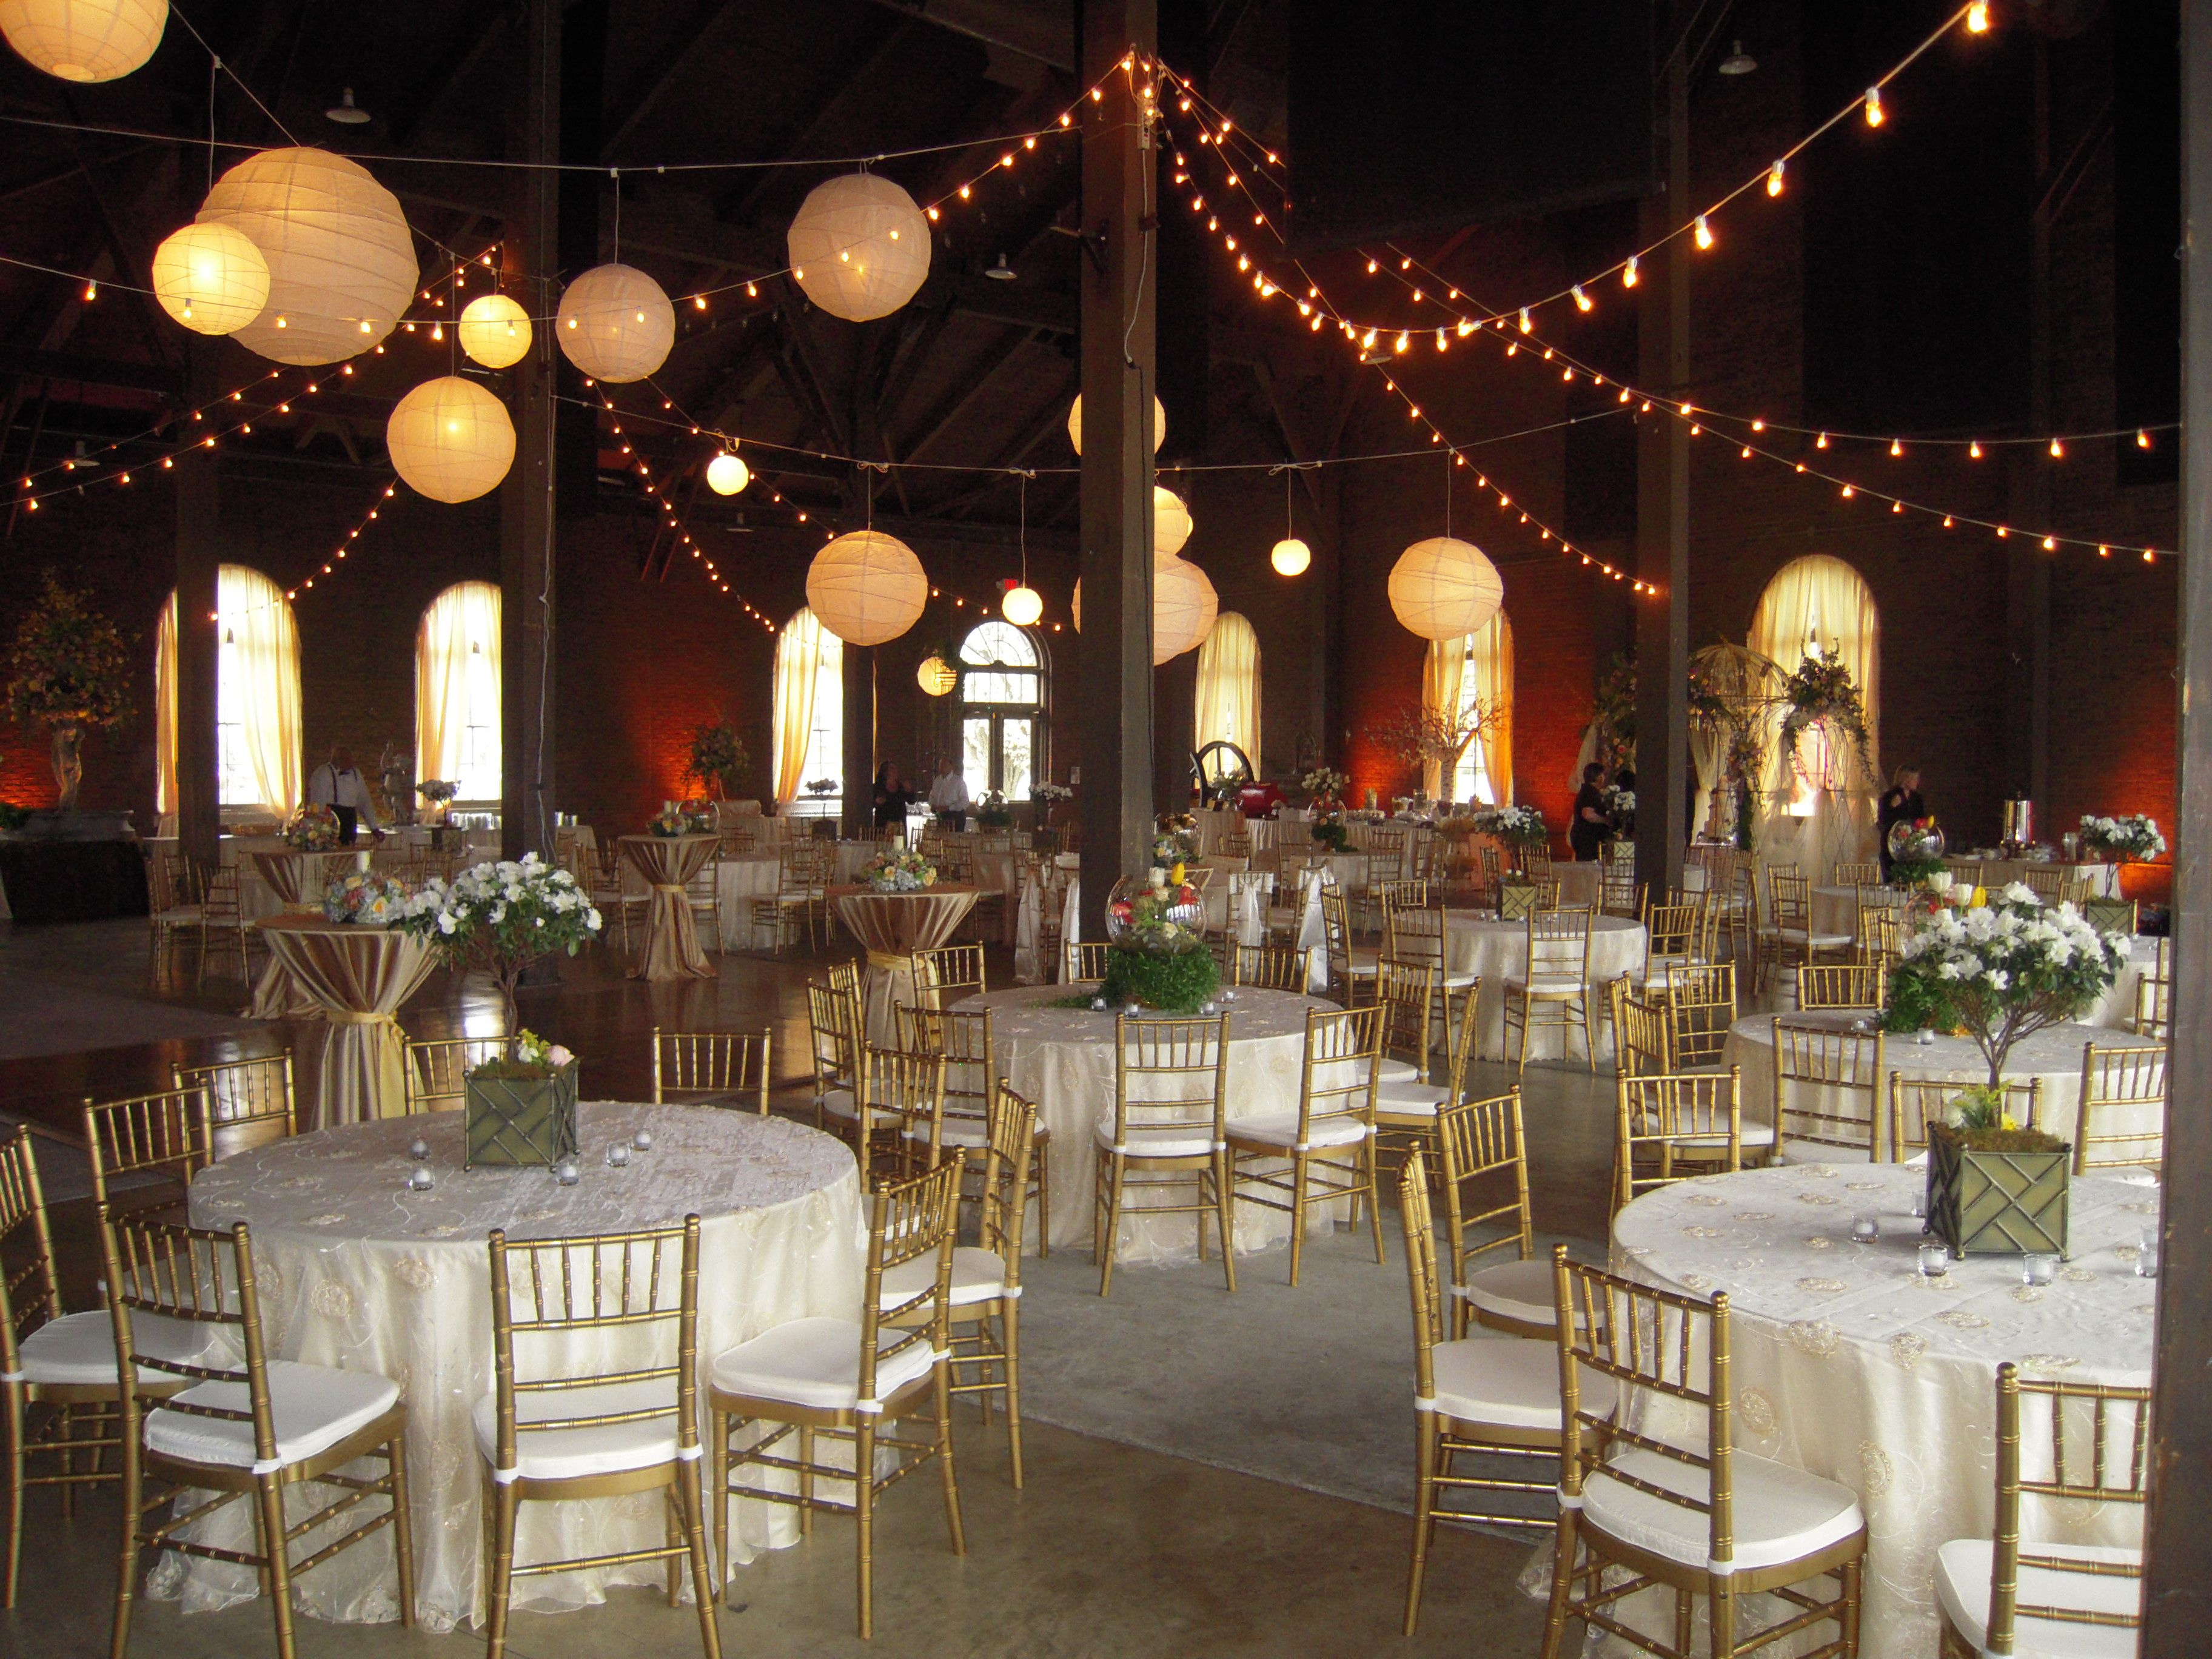 The Roundhouse At The Huntsville Depot Call The Rental Office At 256 564 8113 To Rent This Space For Your Next Event B Round House Event Venues My Wedding Day